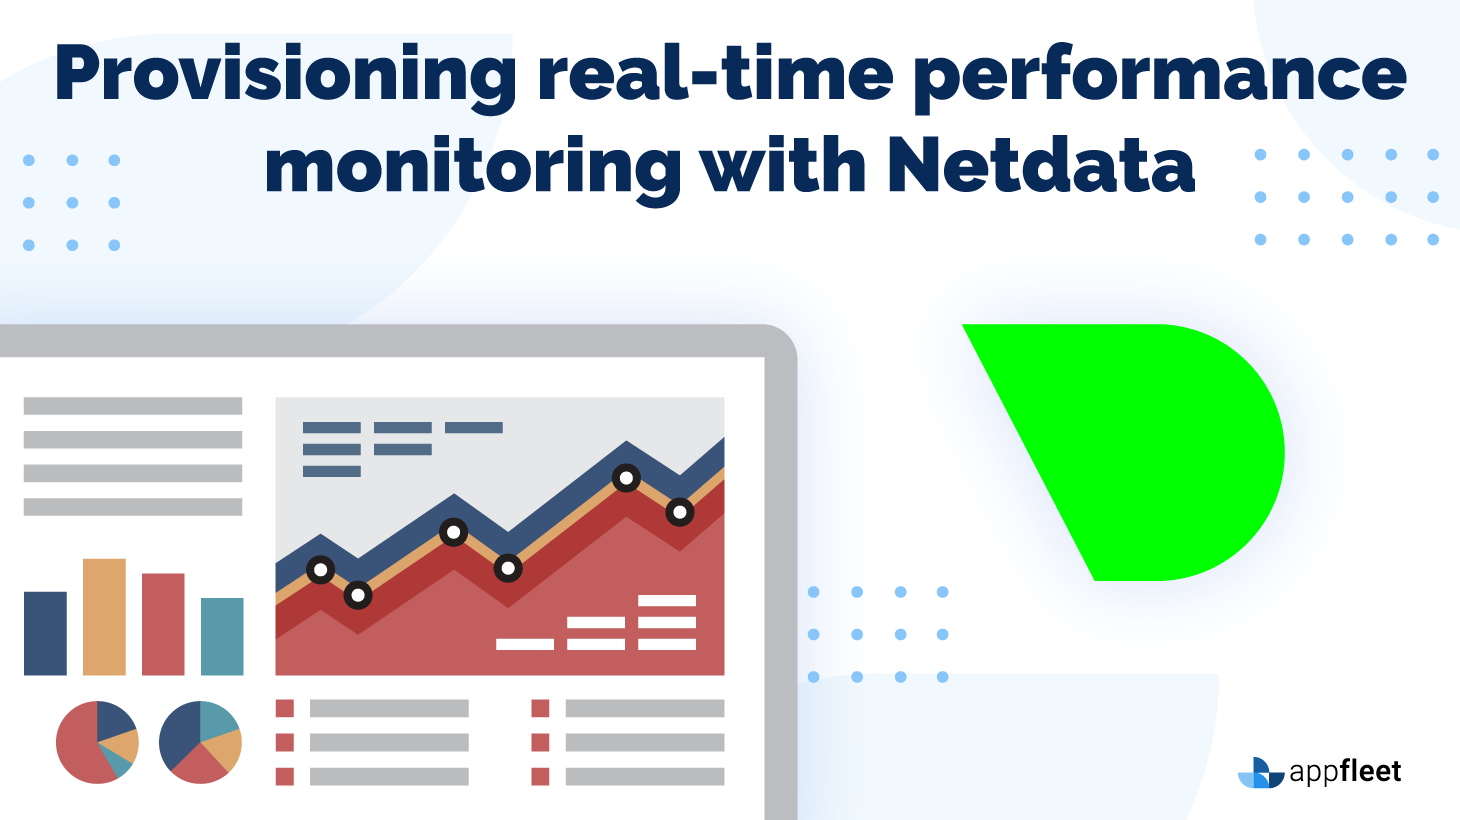 Provisioning real-time performance monitoring with Netdata